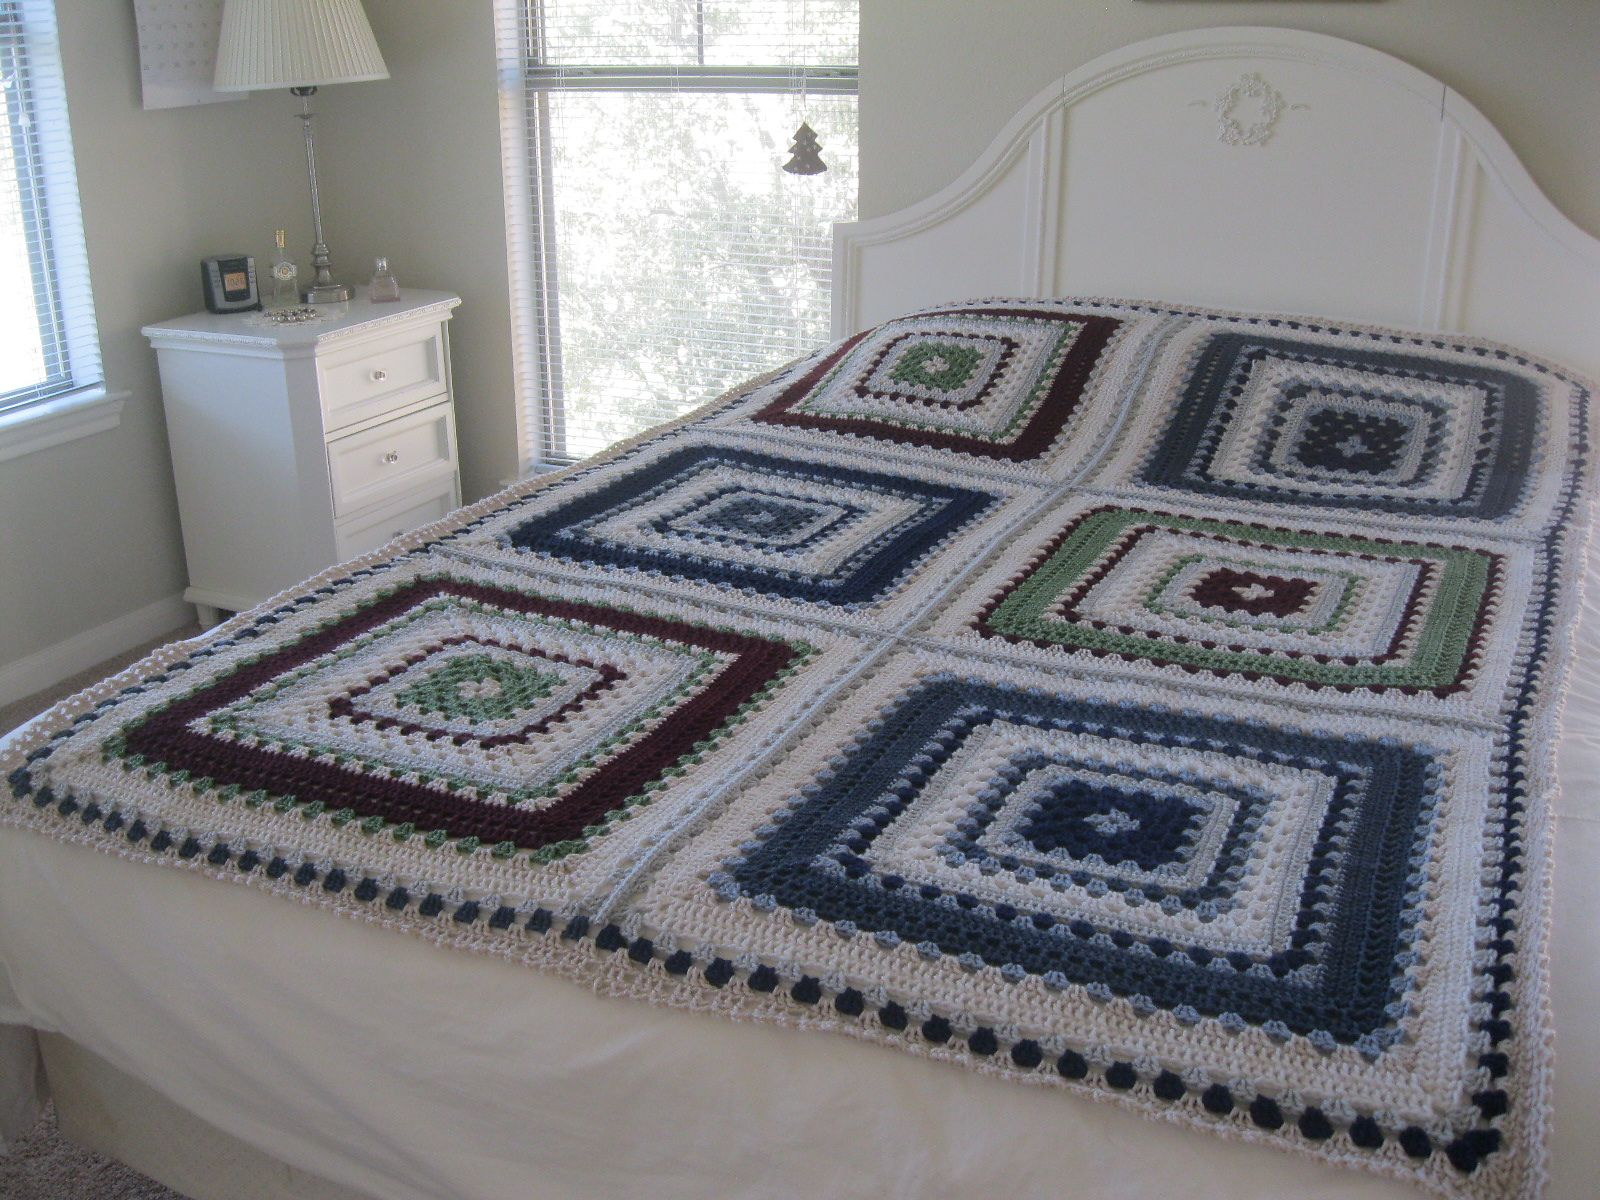 Ravelry giant granny square afghan bedspread pattern by daria ravelry giant granny square afghan bedspread pattern by daria nassiboulina free crochet pattern bankloansurffo Images